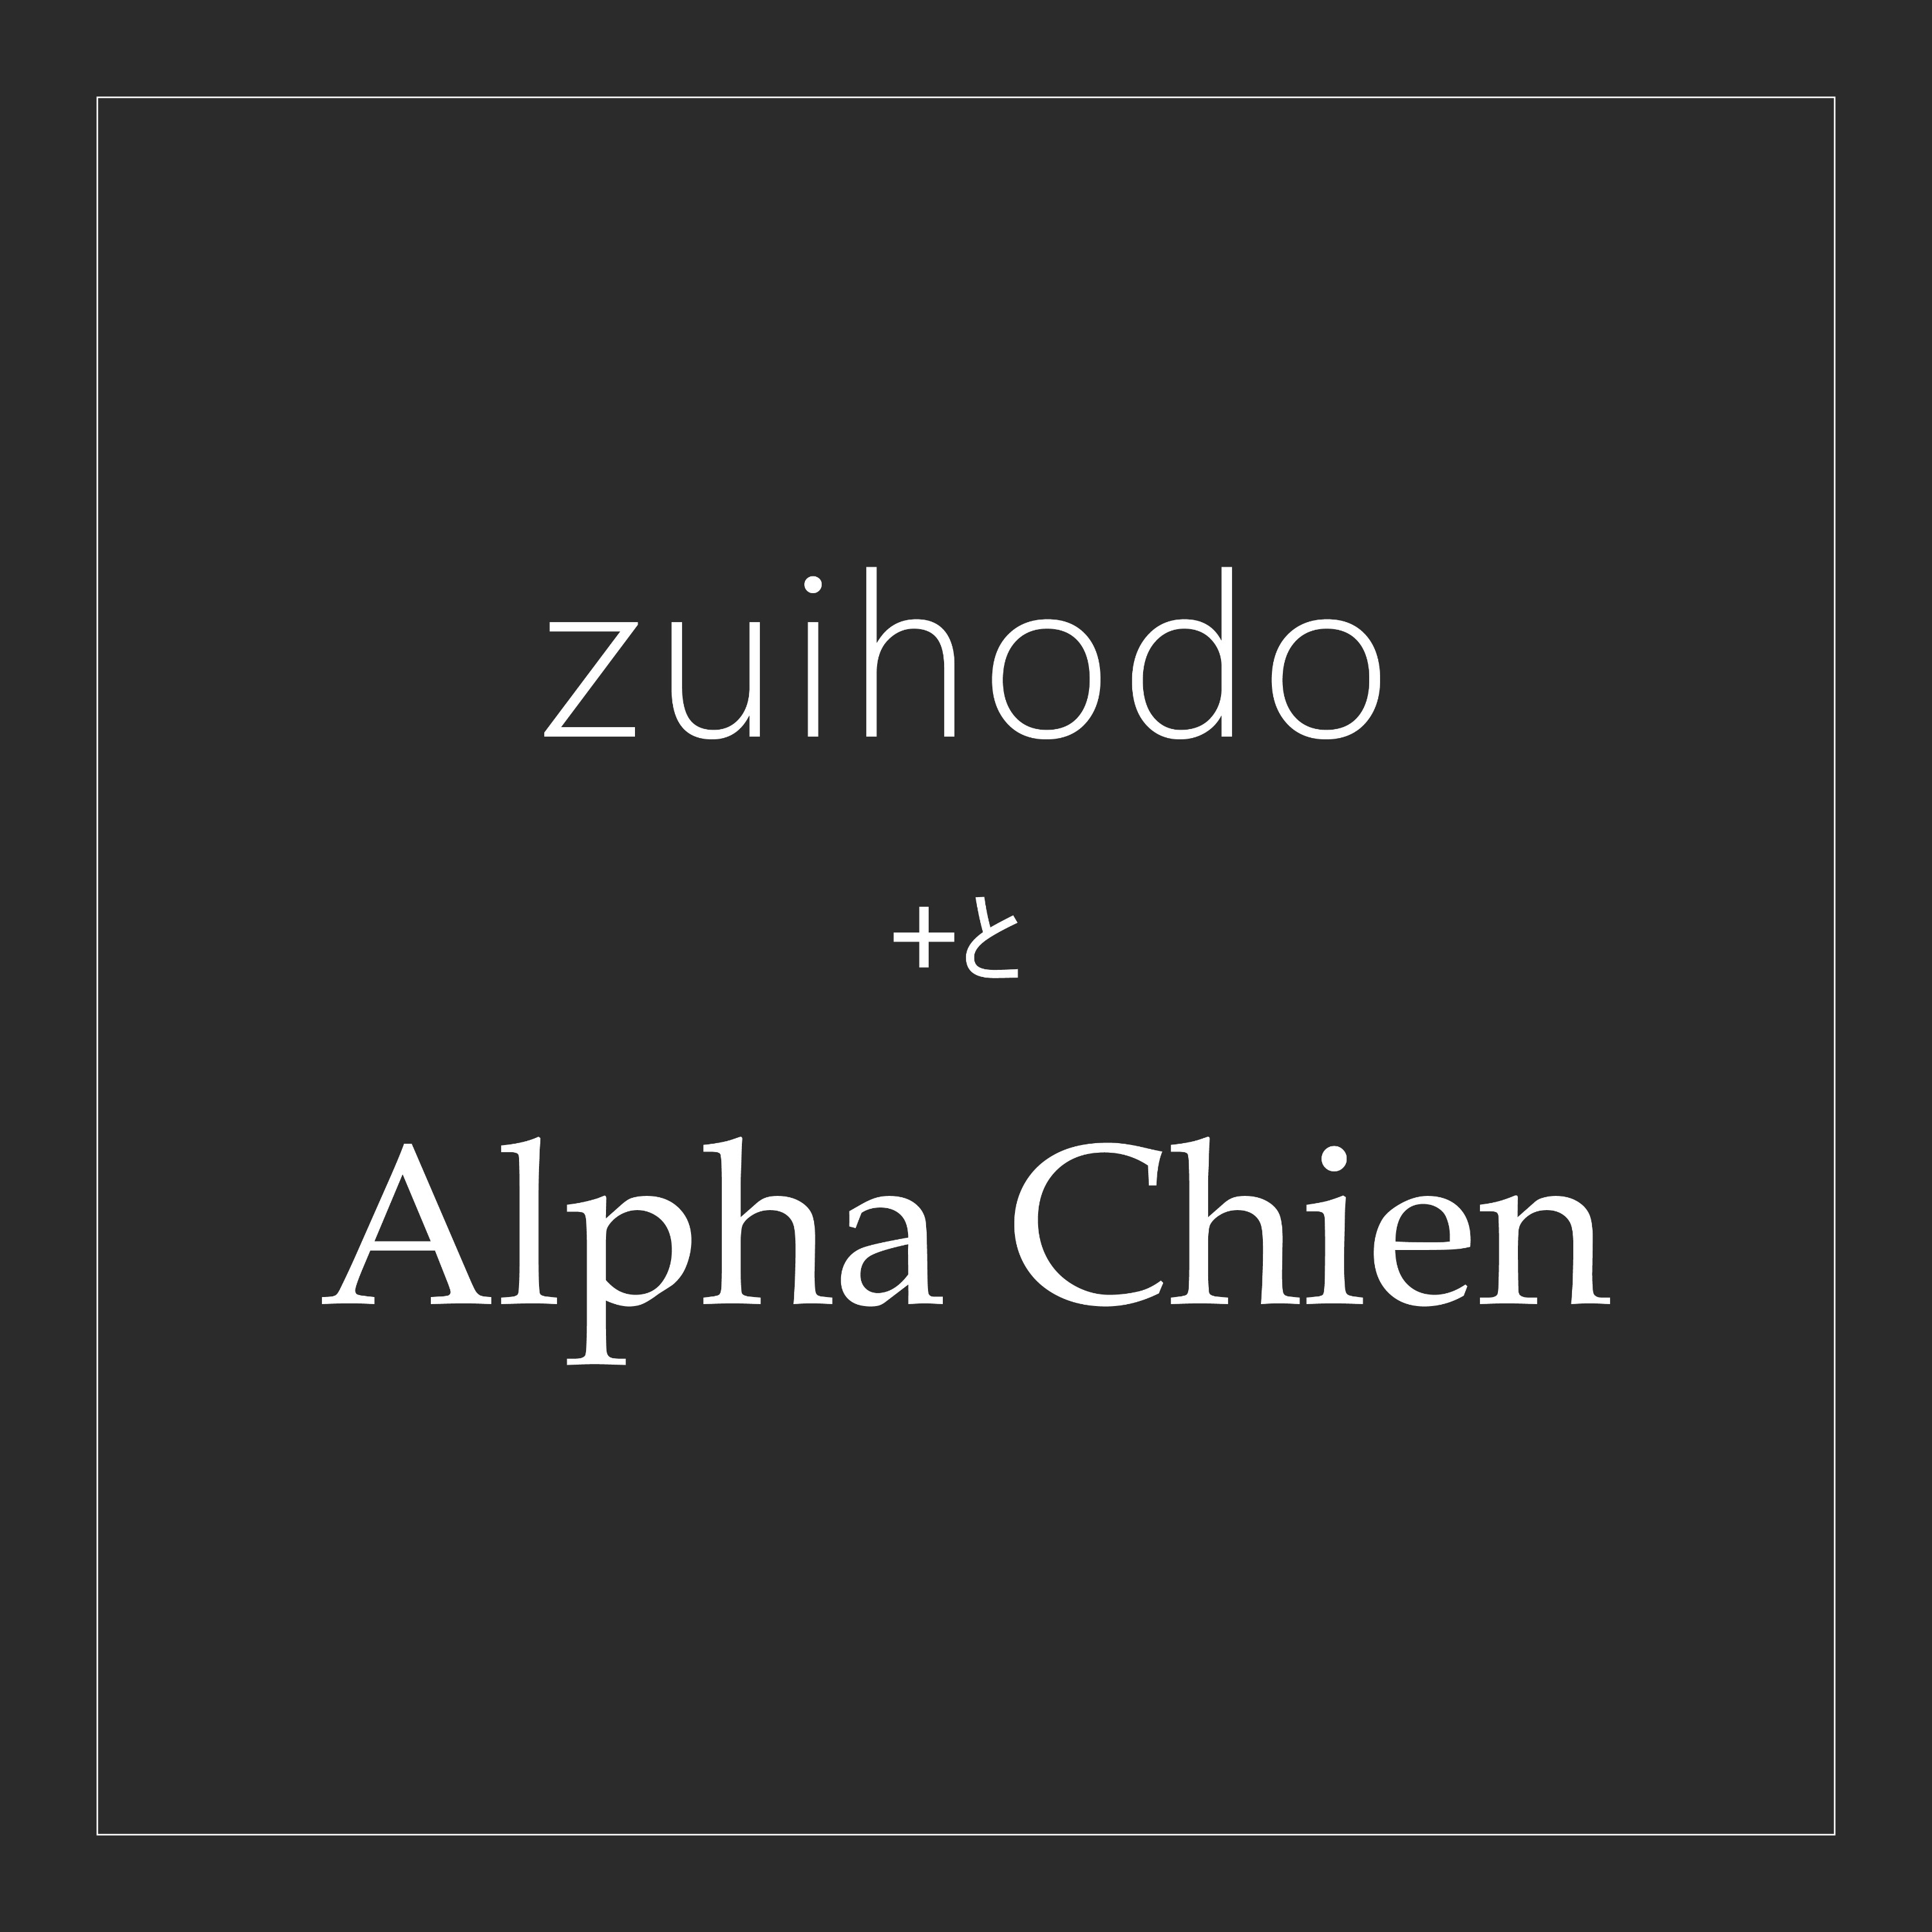 zuido alpharesized